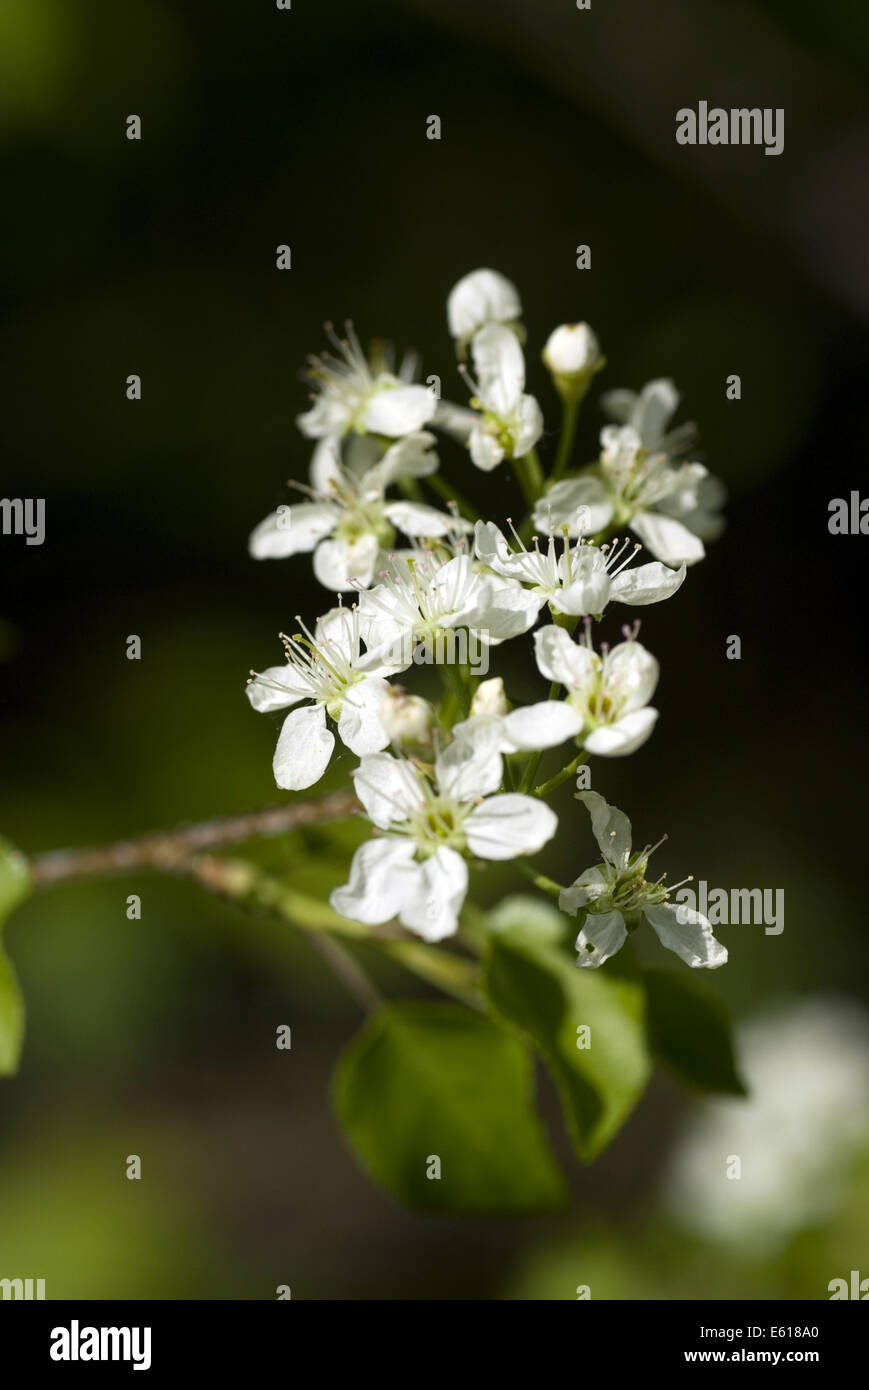 blackthorn, prunus spinosa - Stock Image